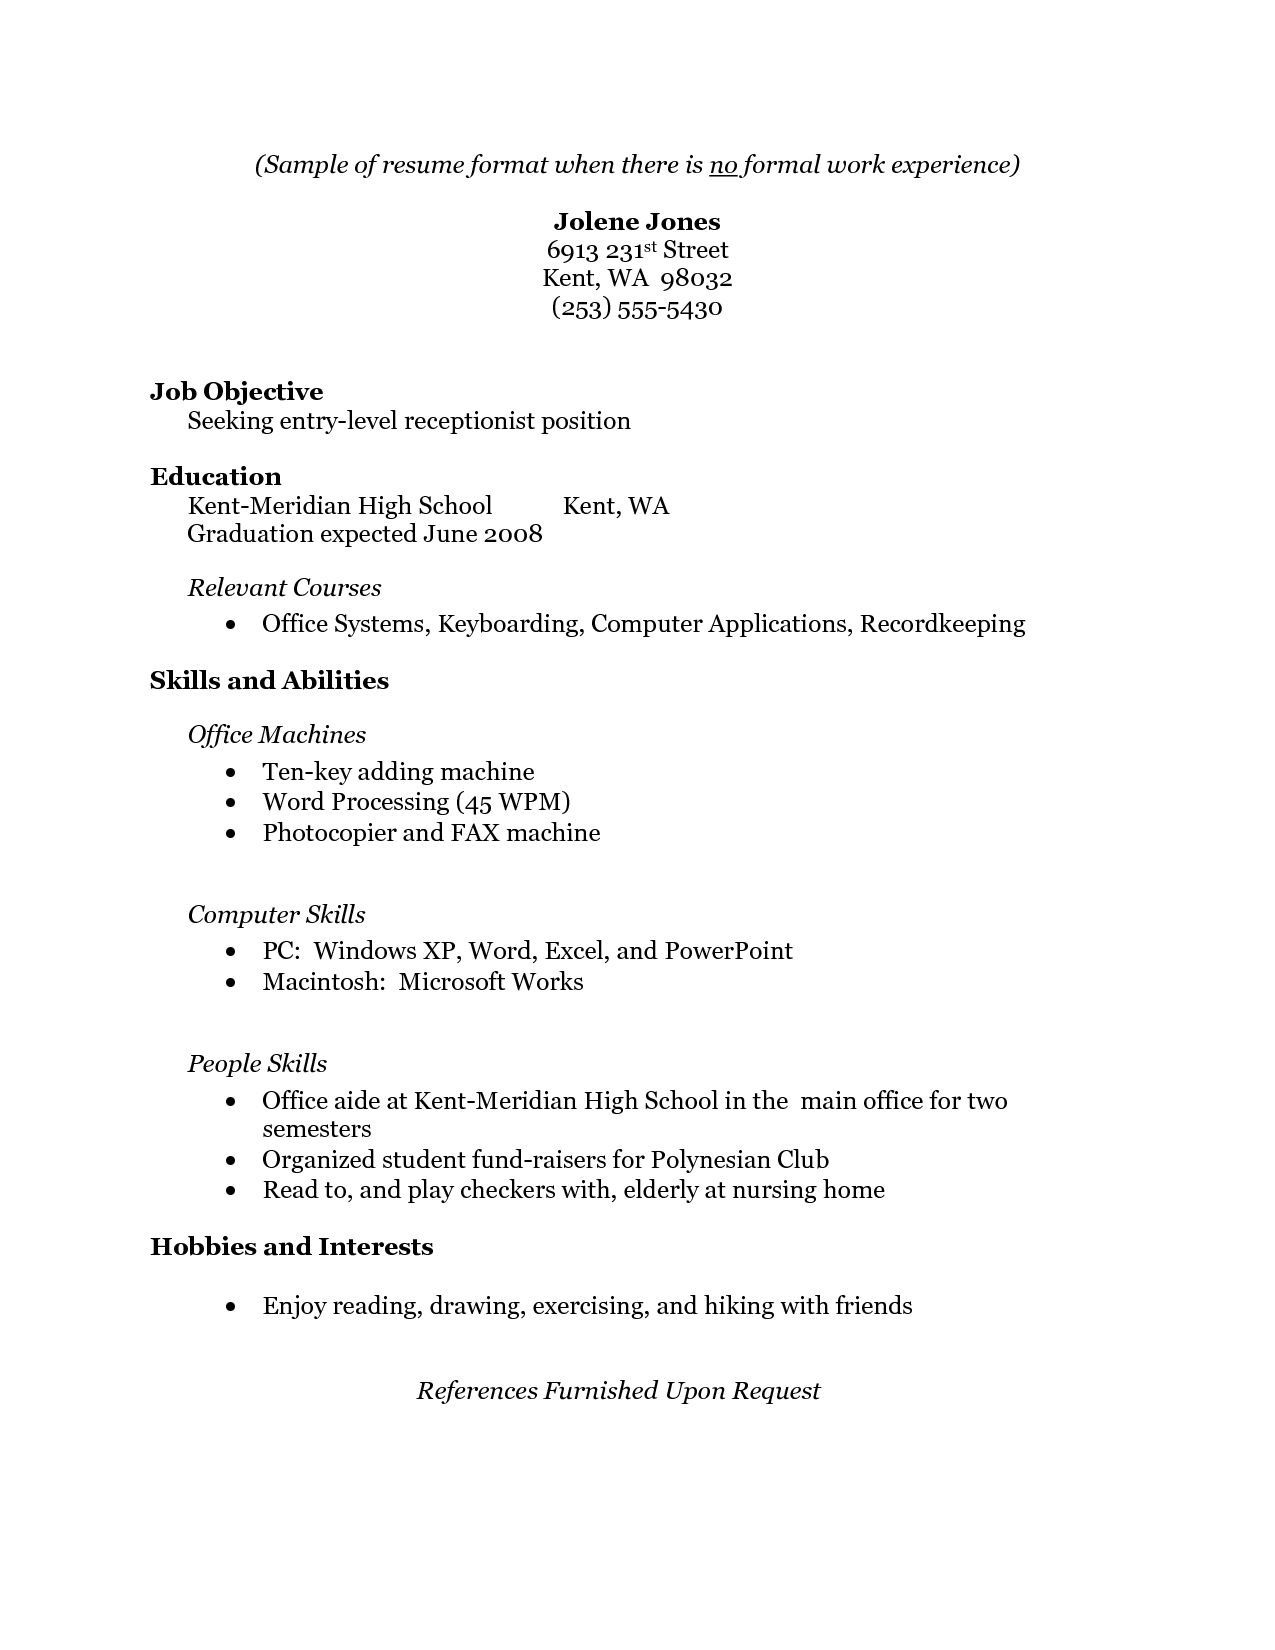 Resume For Someone With No Experience Best Resume Examples No Experience  Professional Resume Examples .